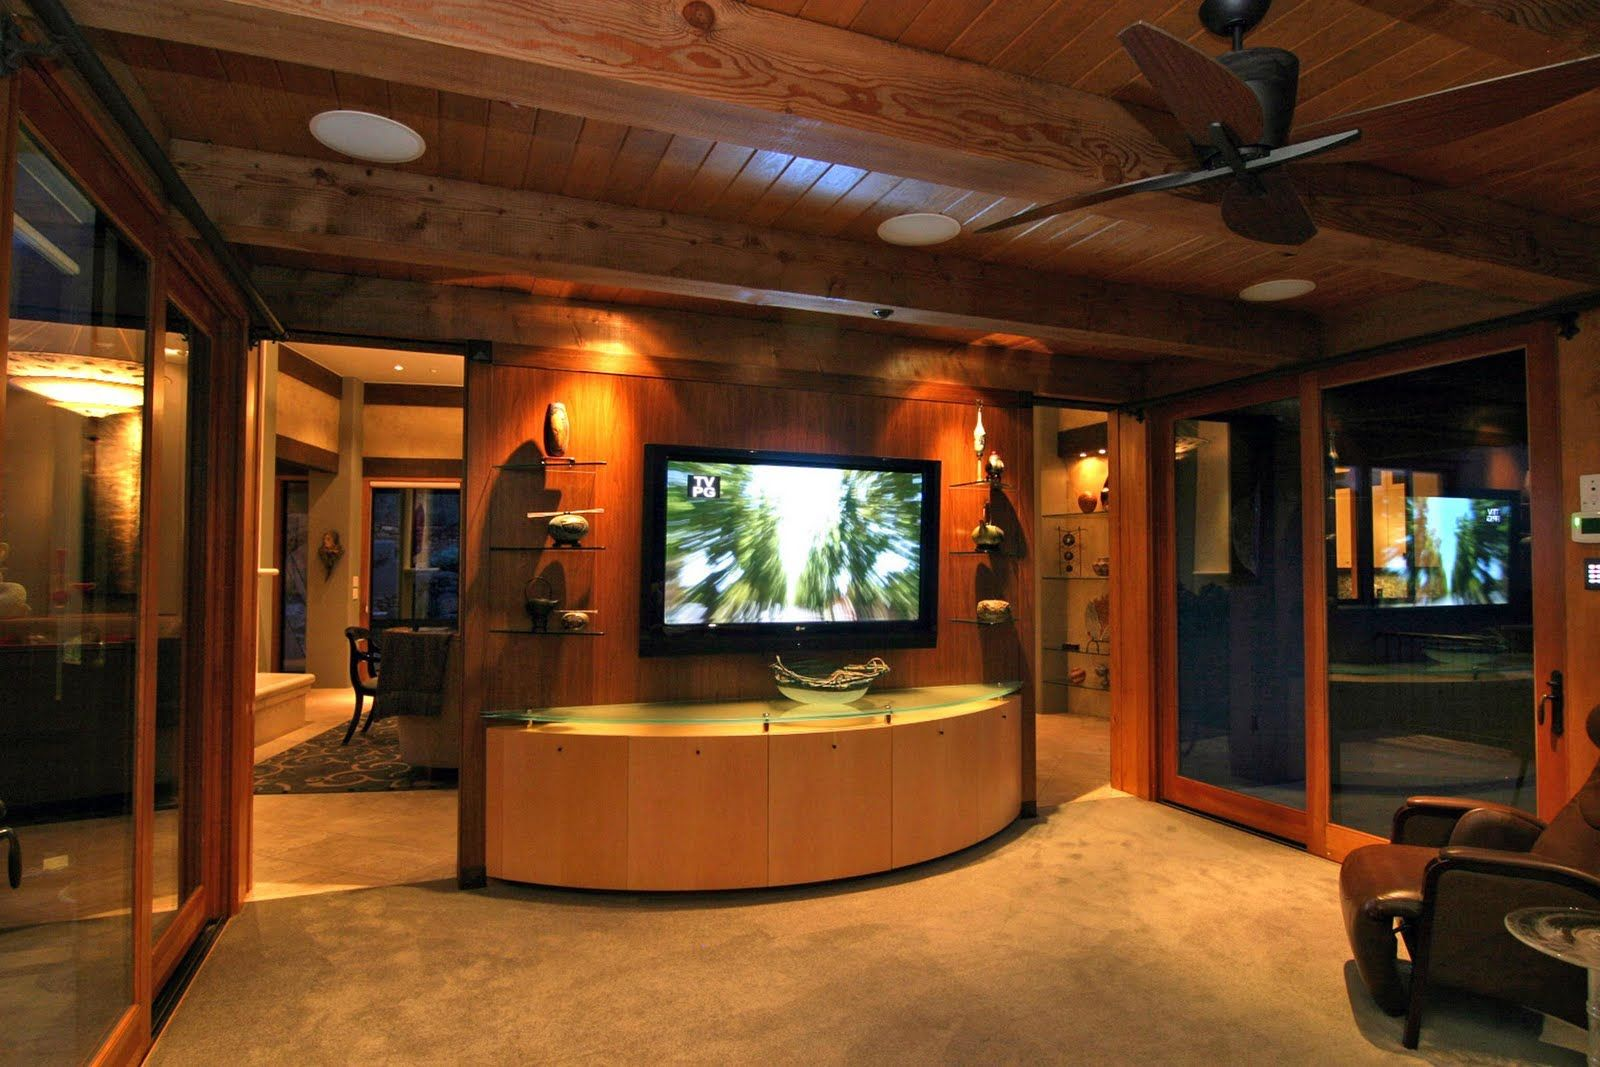 Home Theater Family Room Design Ideas on cheap home theater ideas, theater room decorating ideas, elegant bedroom design ideas, family room home decor ideas, family room tv design ideas, tv entertainment center design ideas, family room lighting design ideas, family room in home theater setup,